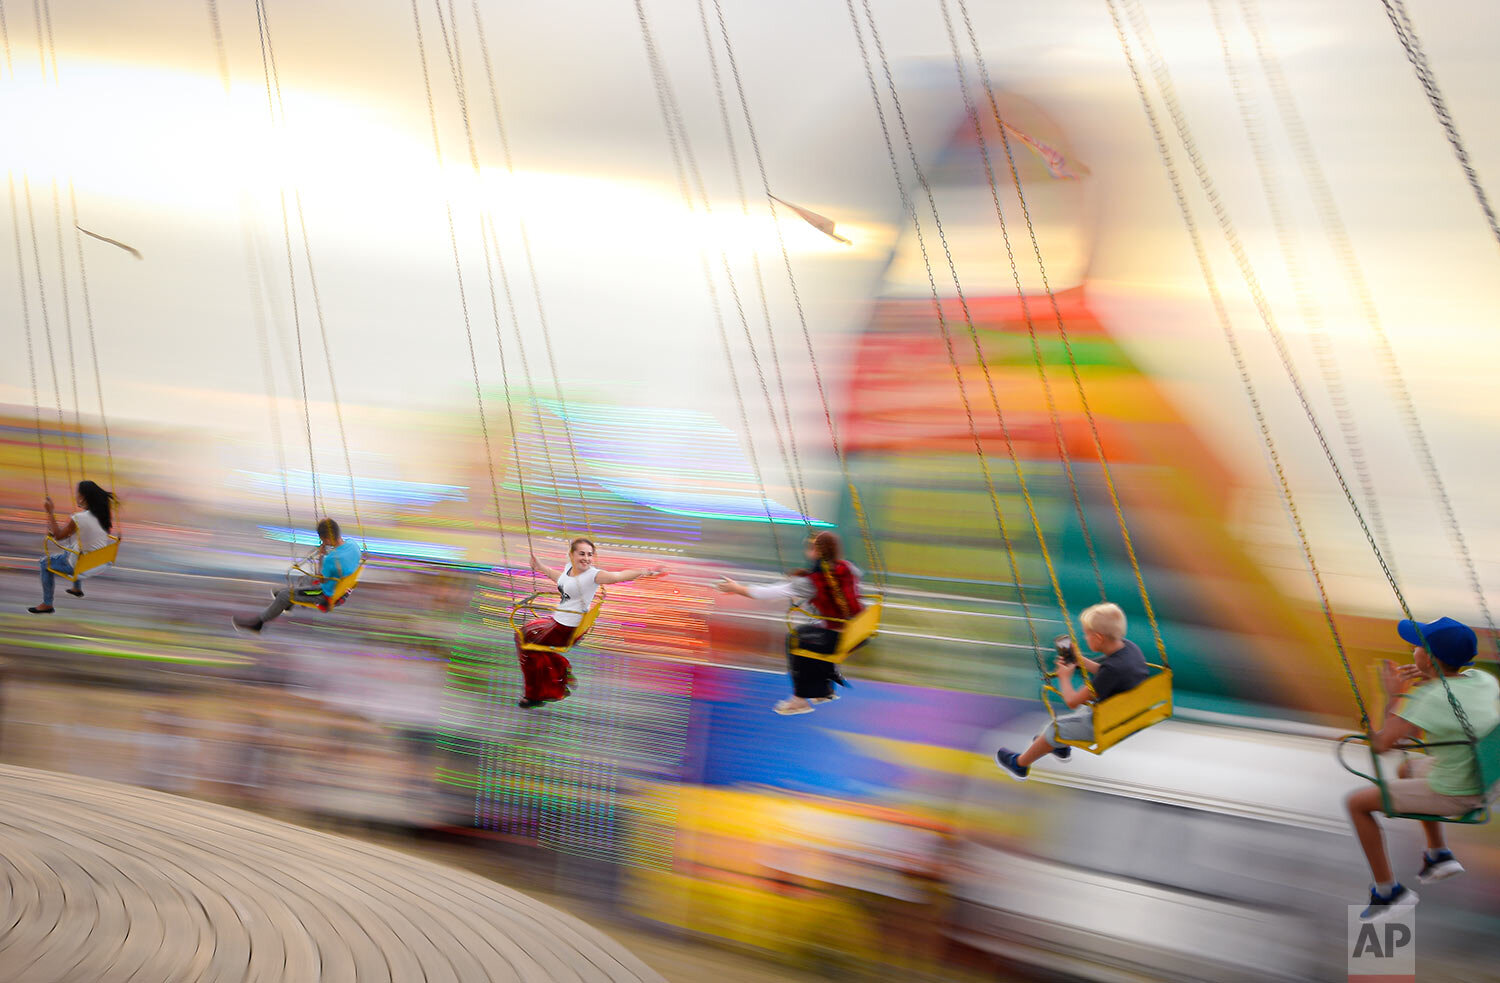 Shot with a slow shutter speed, people enjoy a swing ride at an autumn fair in Titu, southern Romania, Sept. 14, 2019. (AP Photo/Andreea Alexandru)